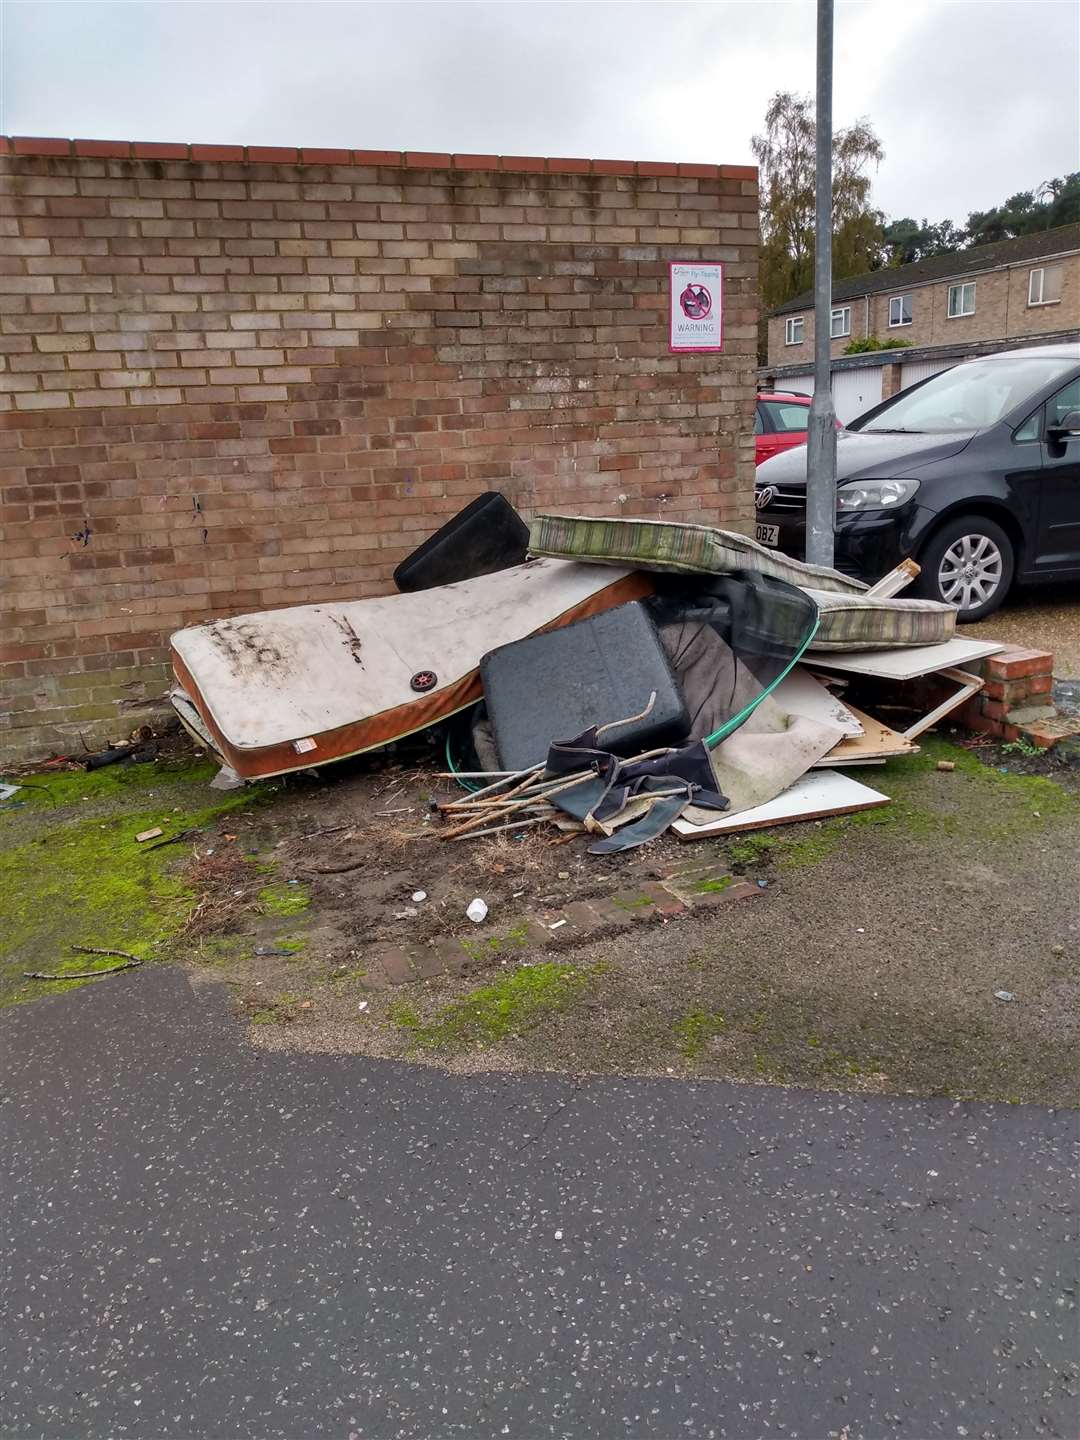 The individual was given a £445 fixed penalty notice for the fly-tip.